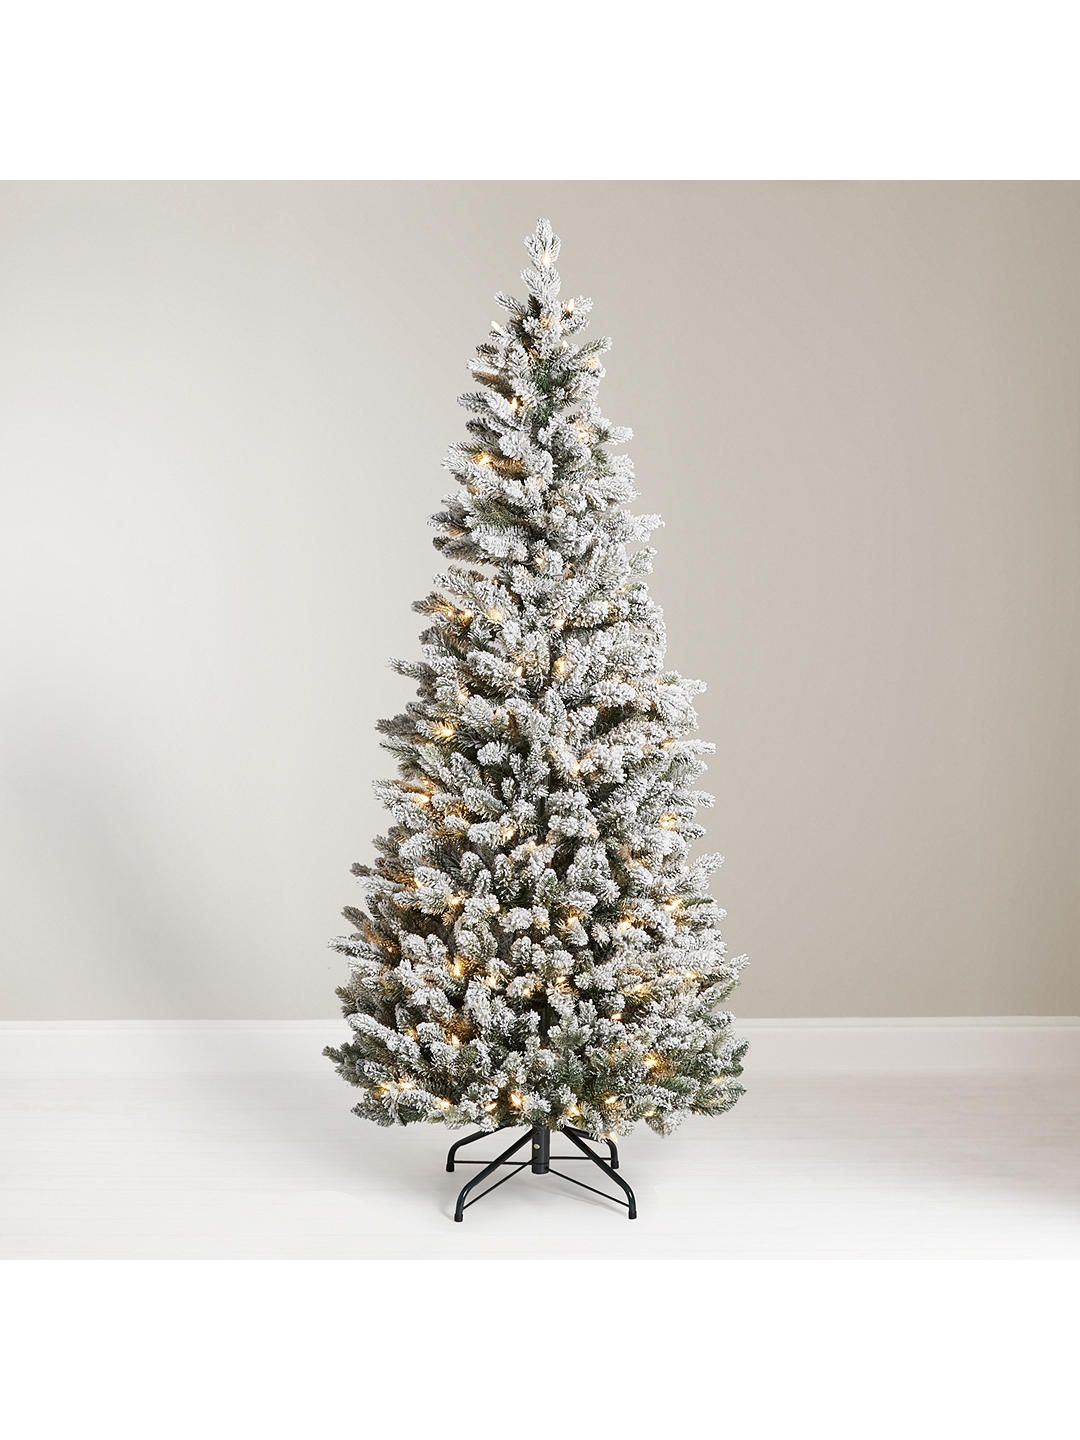 where to buy a good pop up christmas tree pre lit pop up christmas tree - Pop Up Christmas Tree With Lights And Decorations